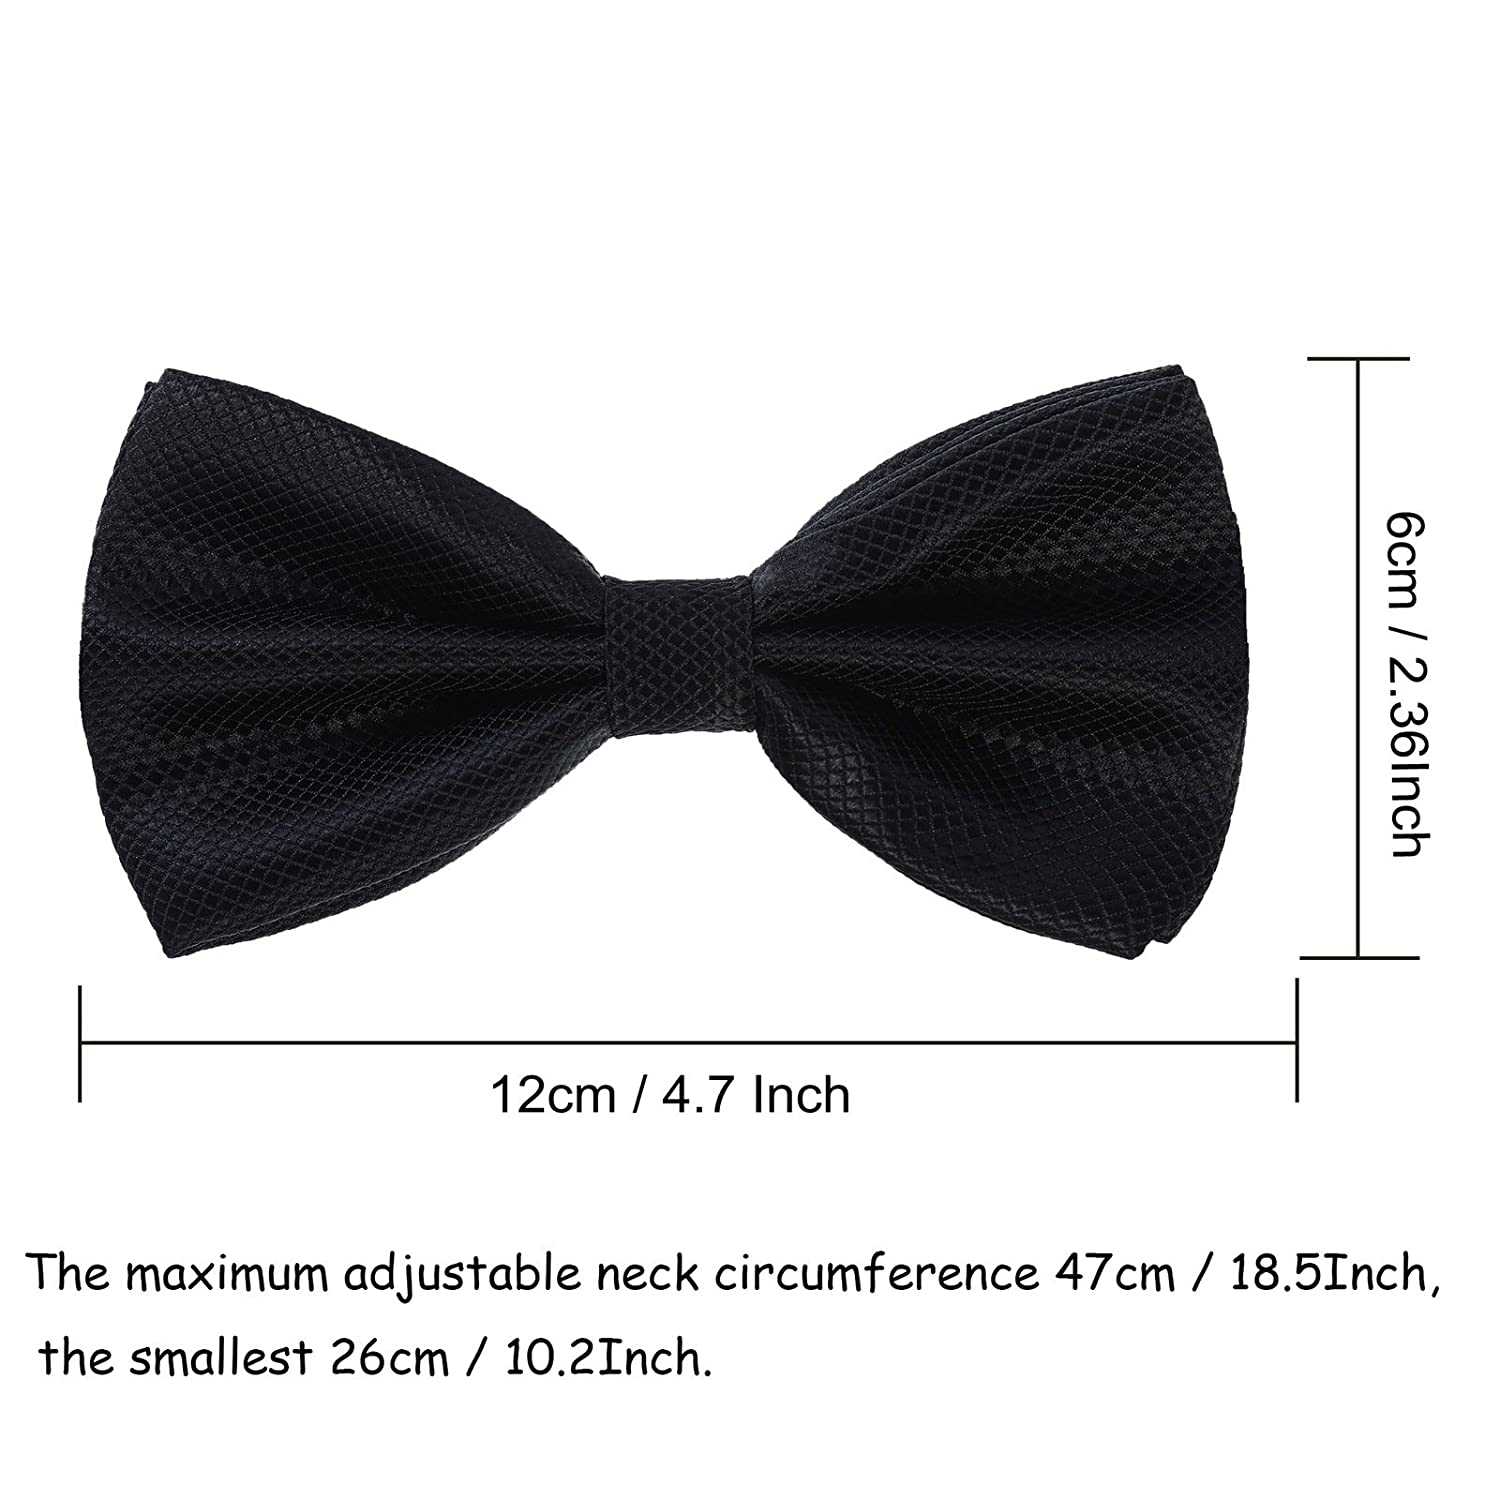 Mens Boys Formal Bow Ties - 6 Pack of Solid Color Adjustable Pre Tied Bowties (White)